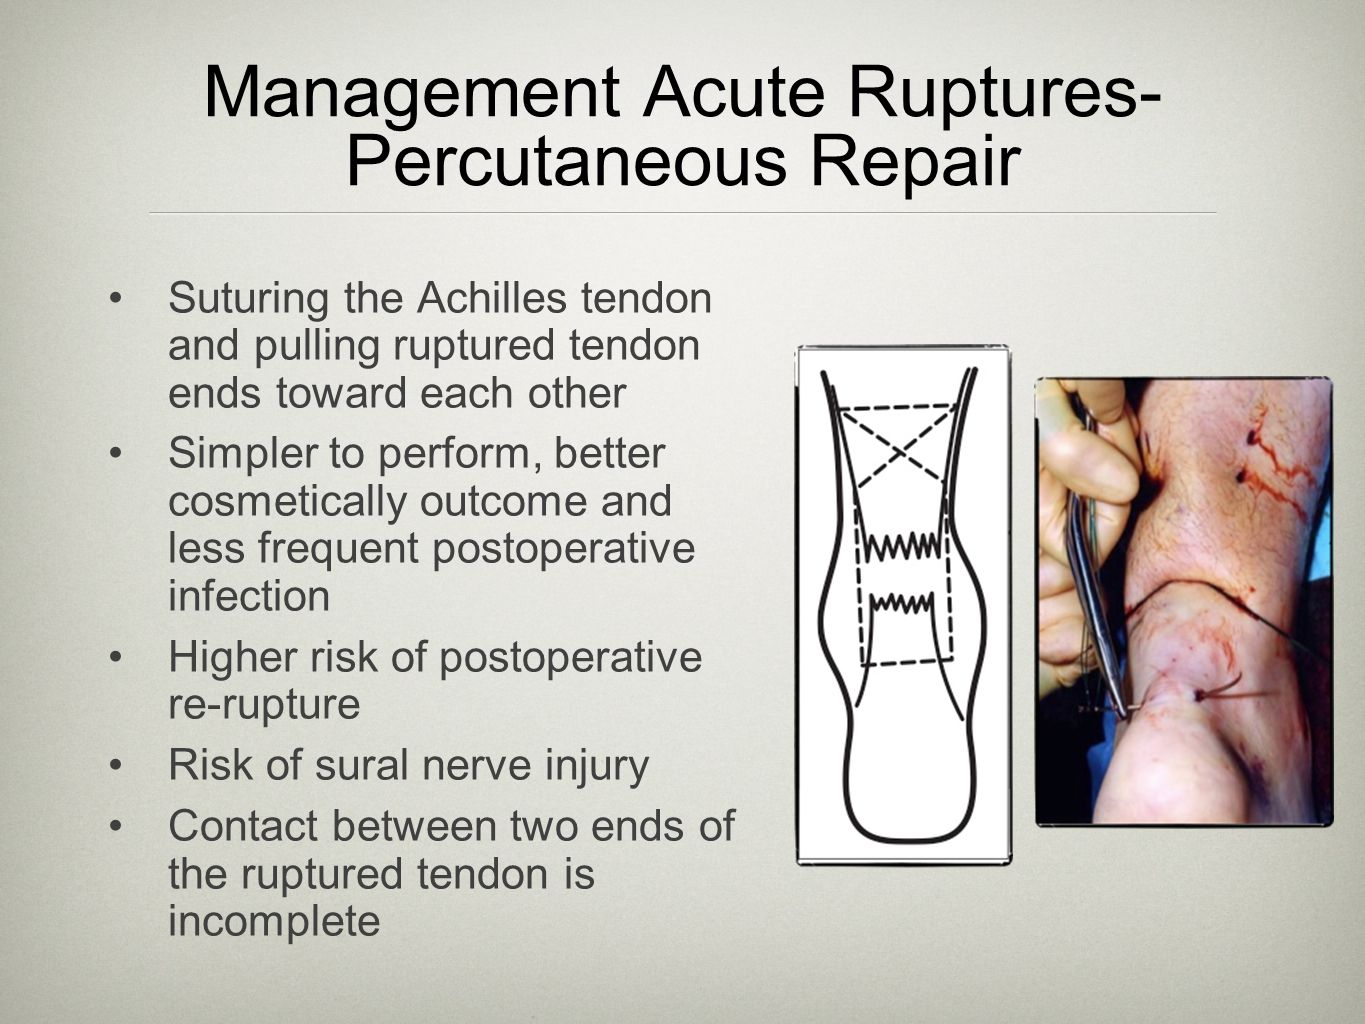 Management Acute Ruptures-Percutaneous Repair